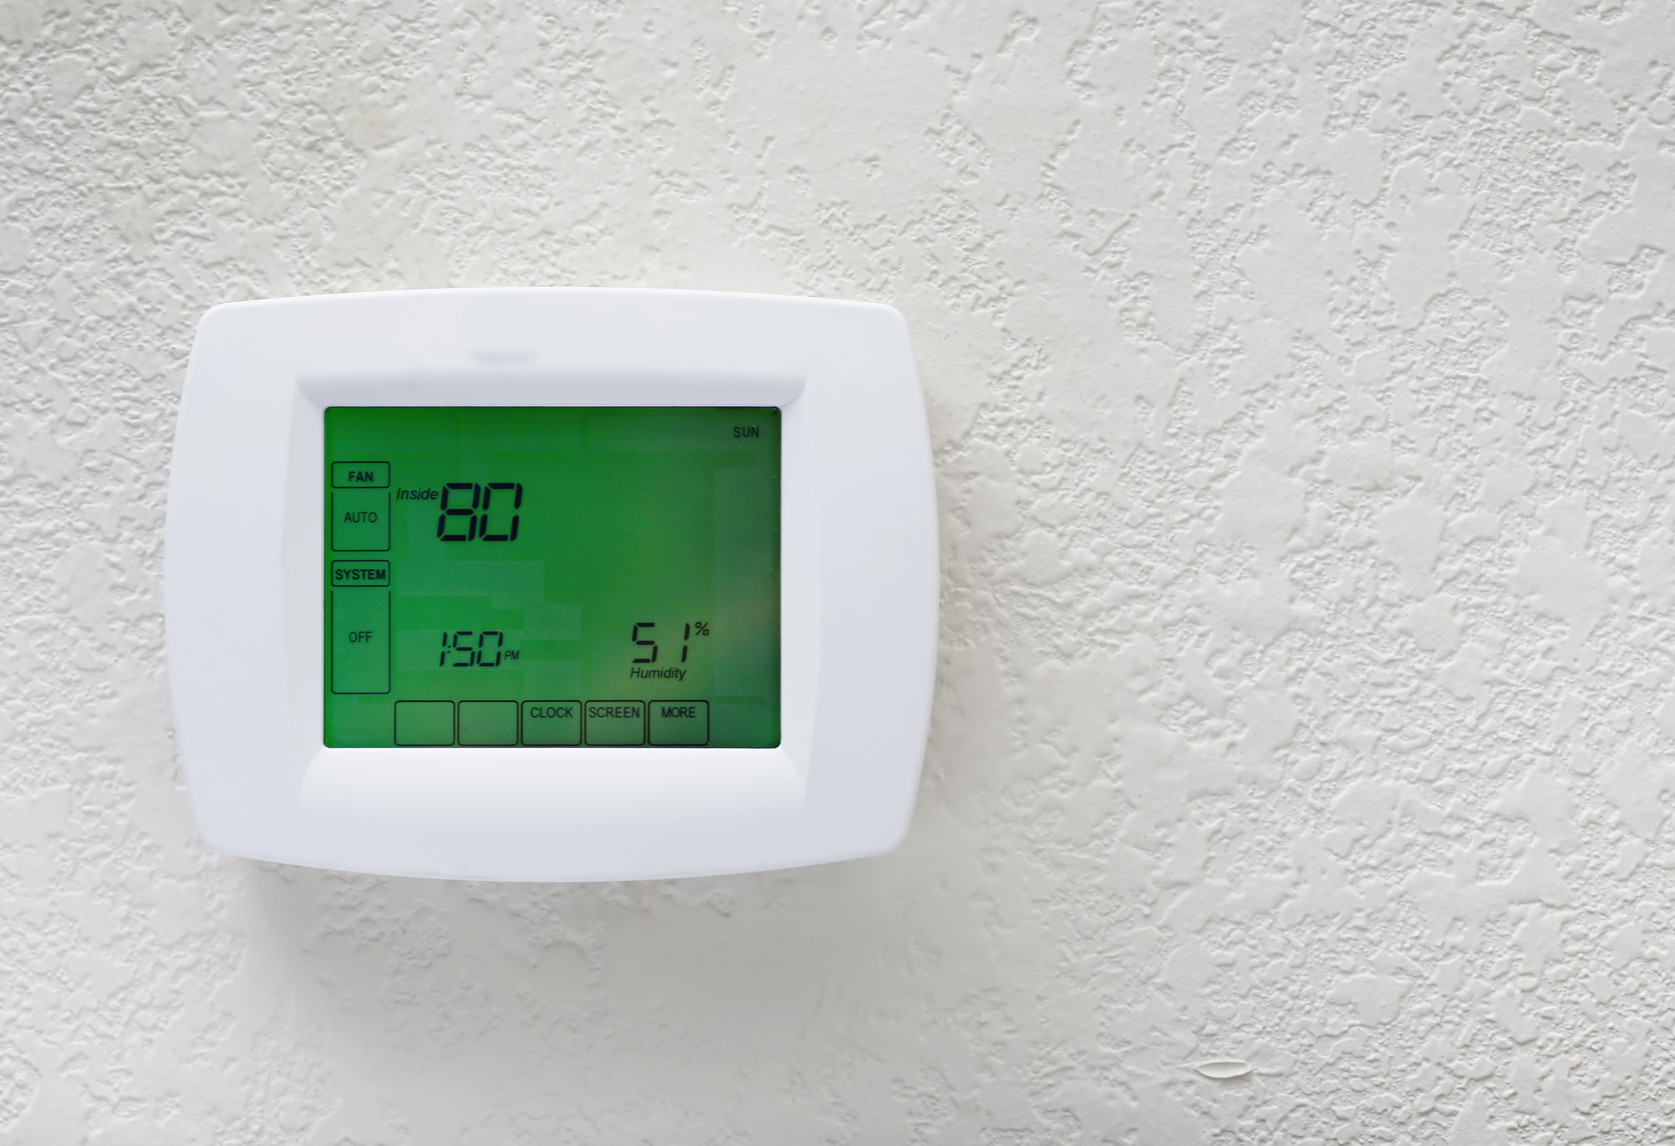 Modern programmable thermostat-energy saving unit